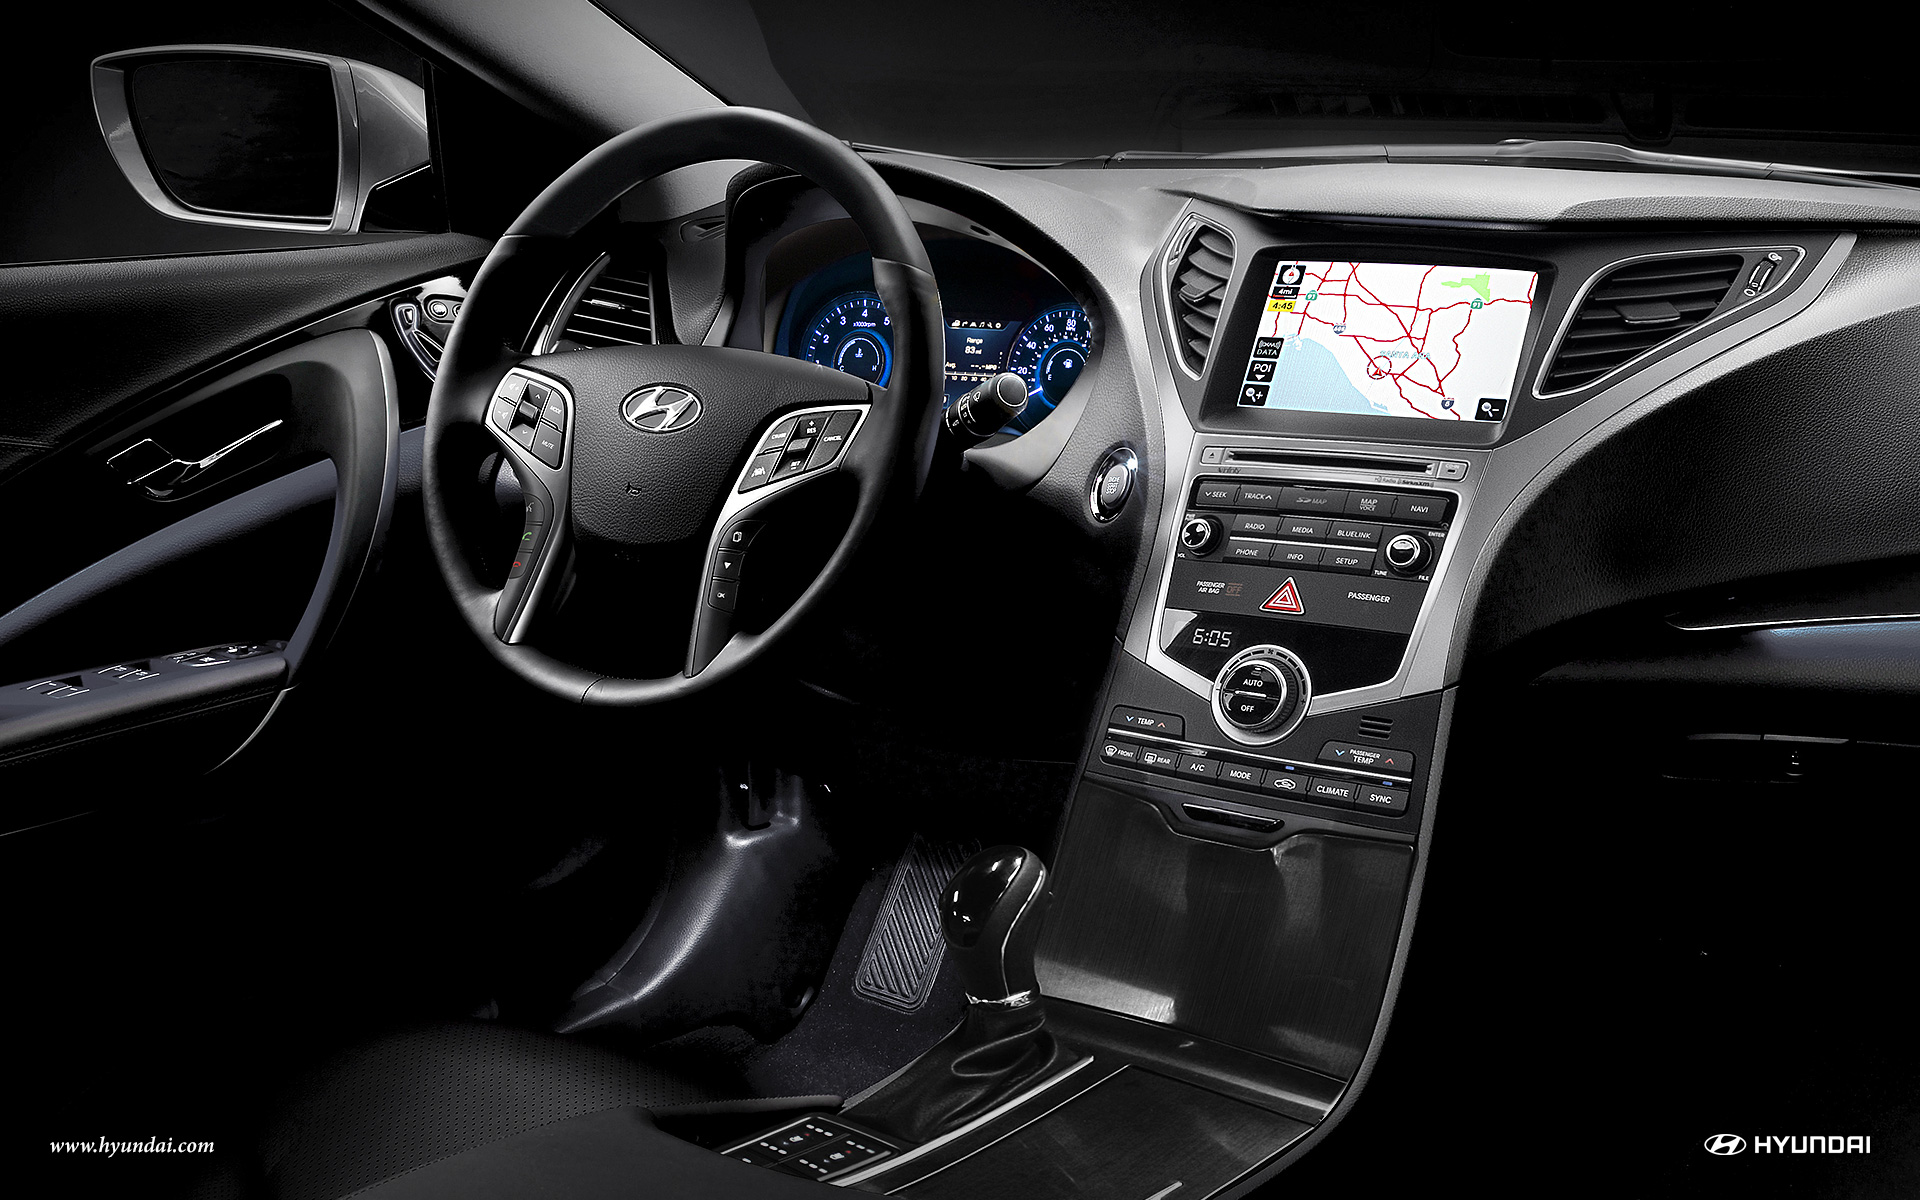 com n everyone about for en news hyundai pleasure exhilarating driving room worldwide all new the